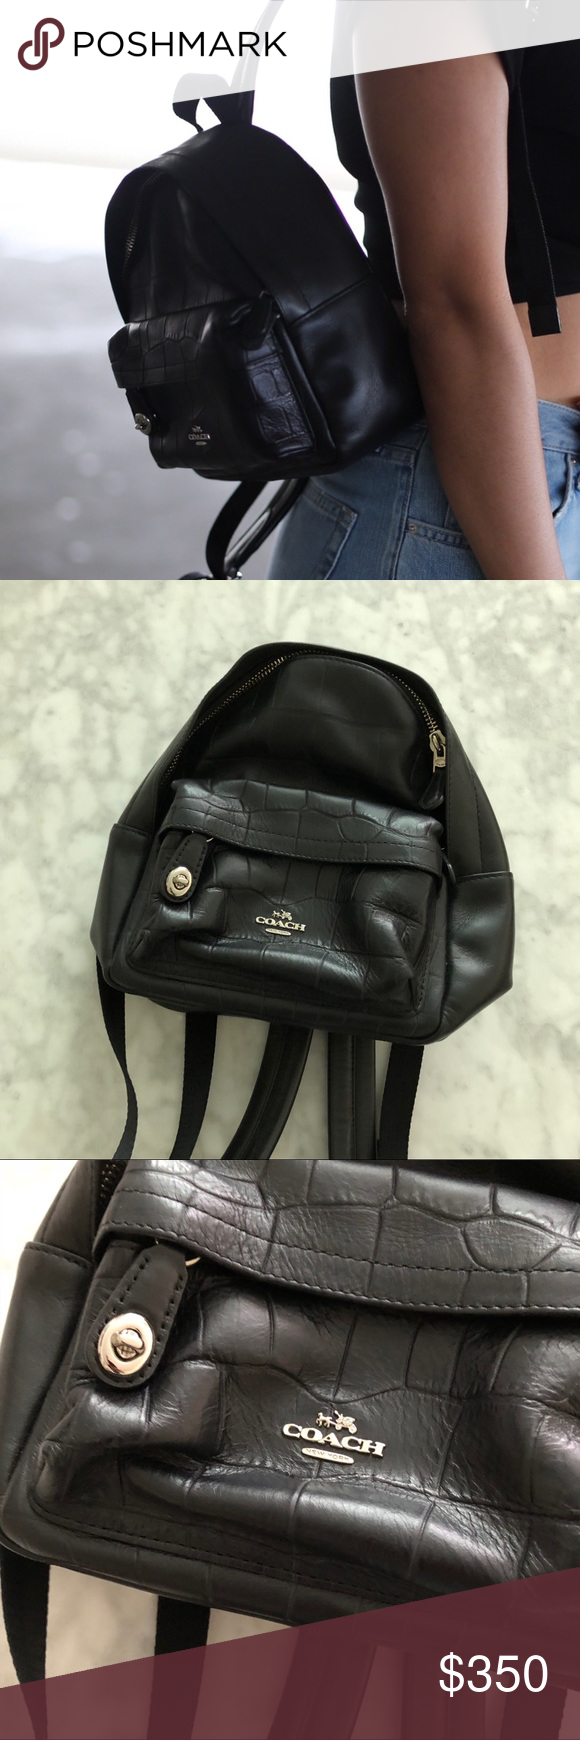 32b83ea3e4 Coach Mini Campus Backpack Croc Only worn 3 times! Coach mini campus  backpack in excellent condition! Croc embossed leather! 7.5 inches long! 9  inches high!